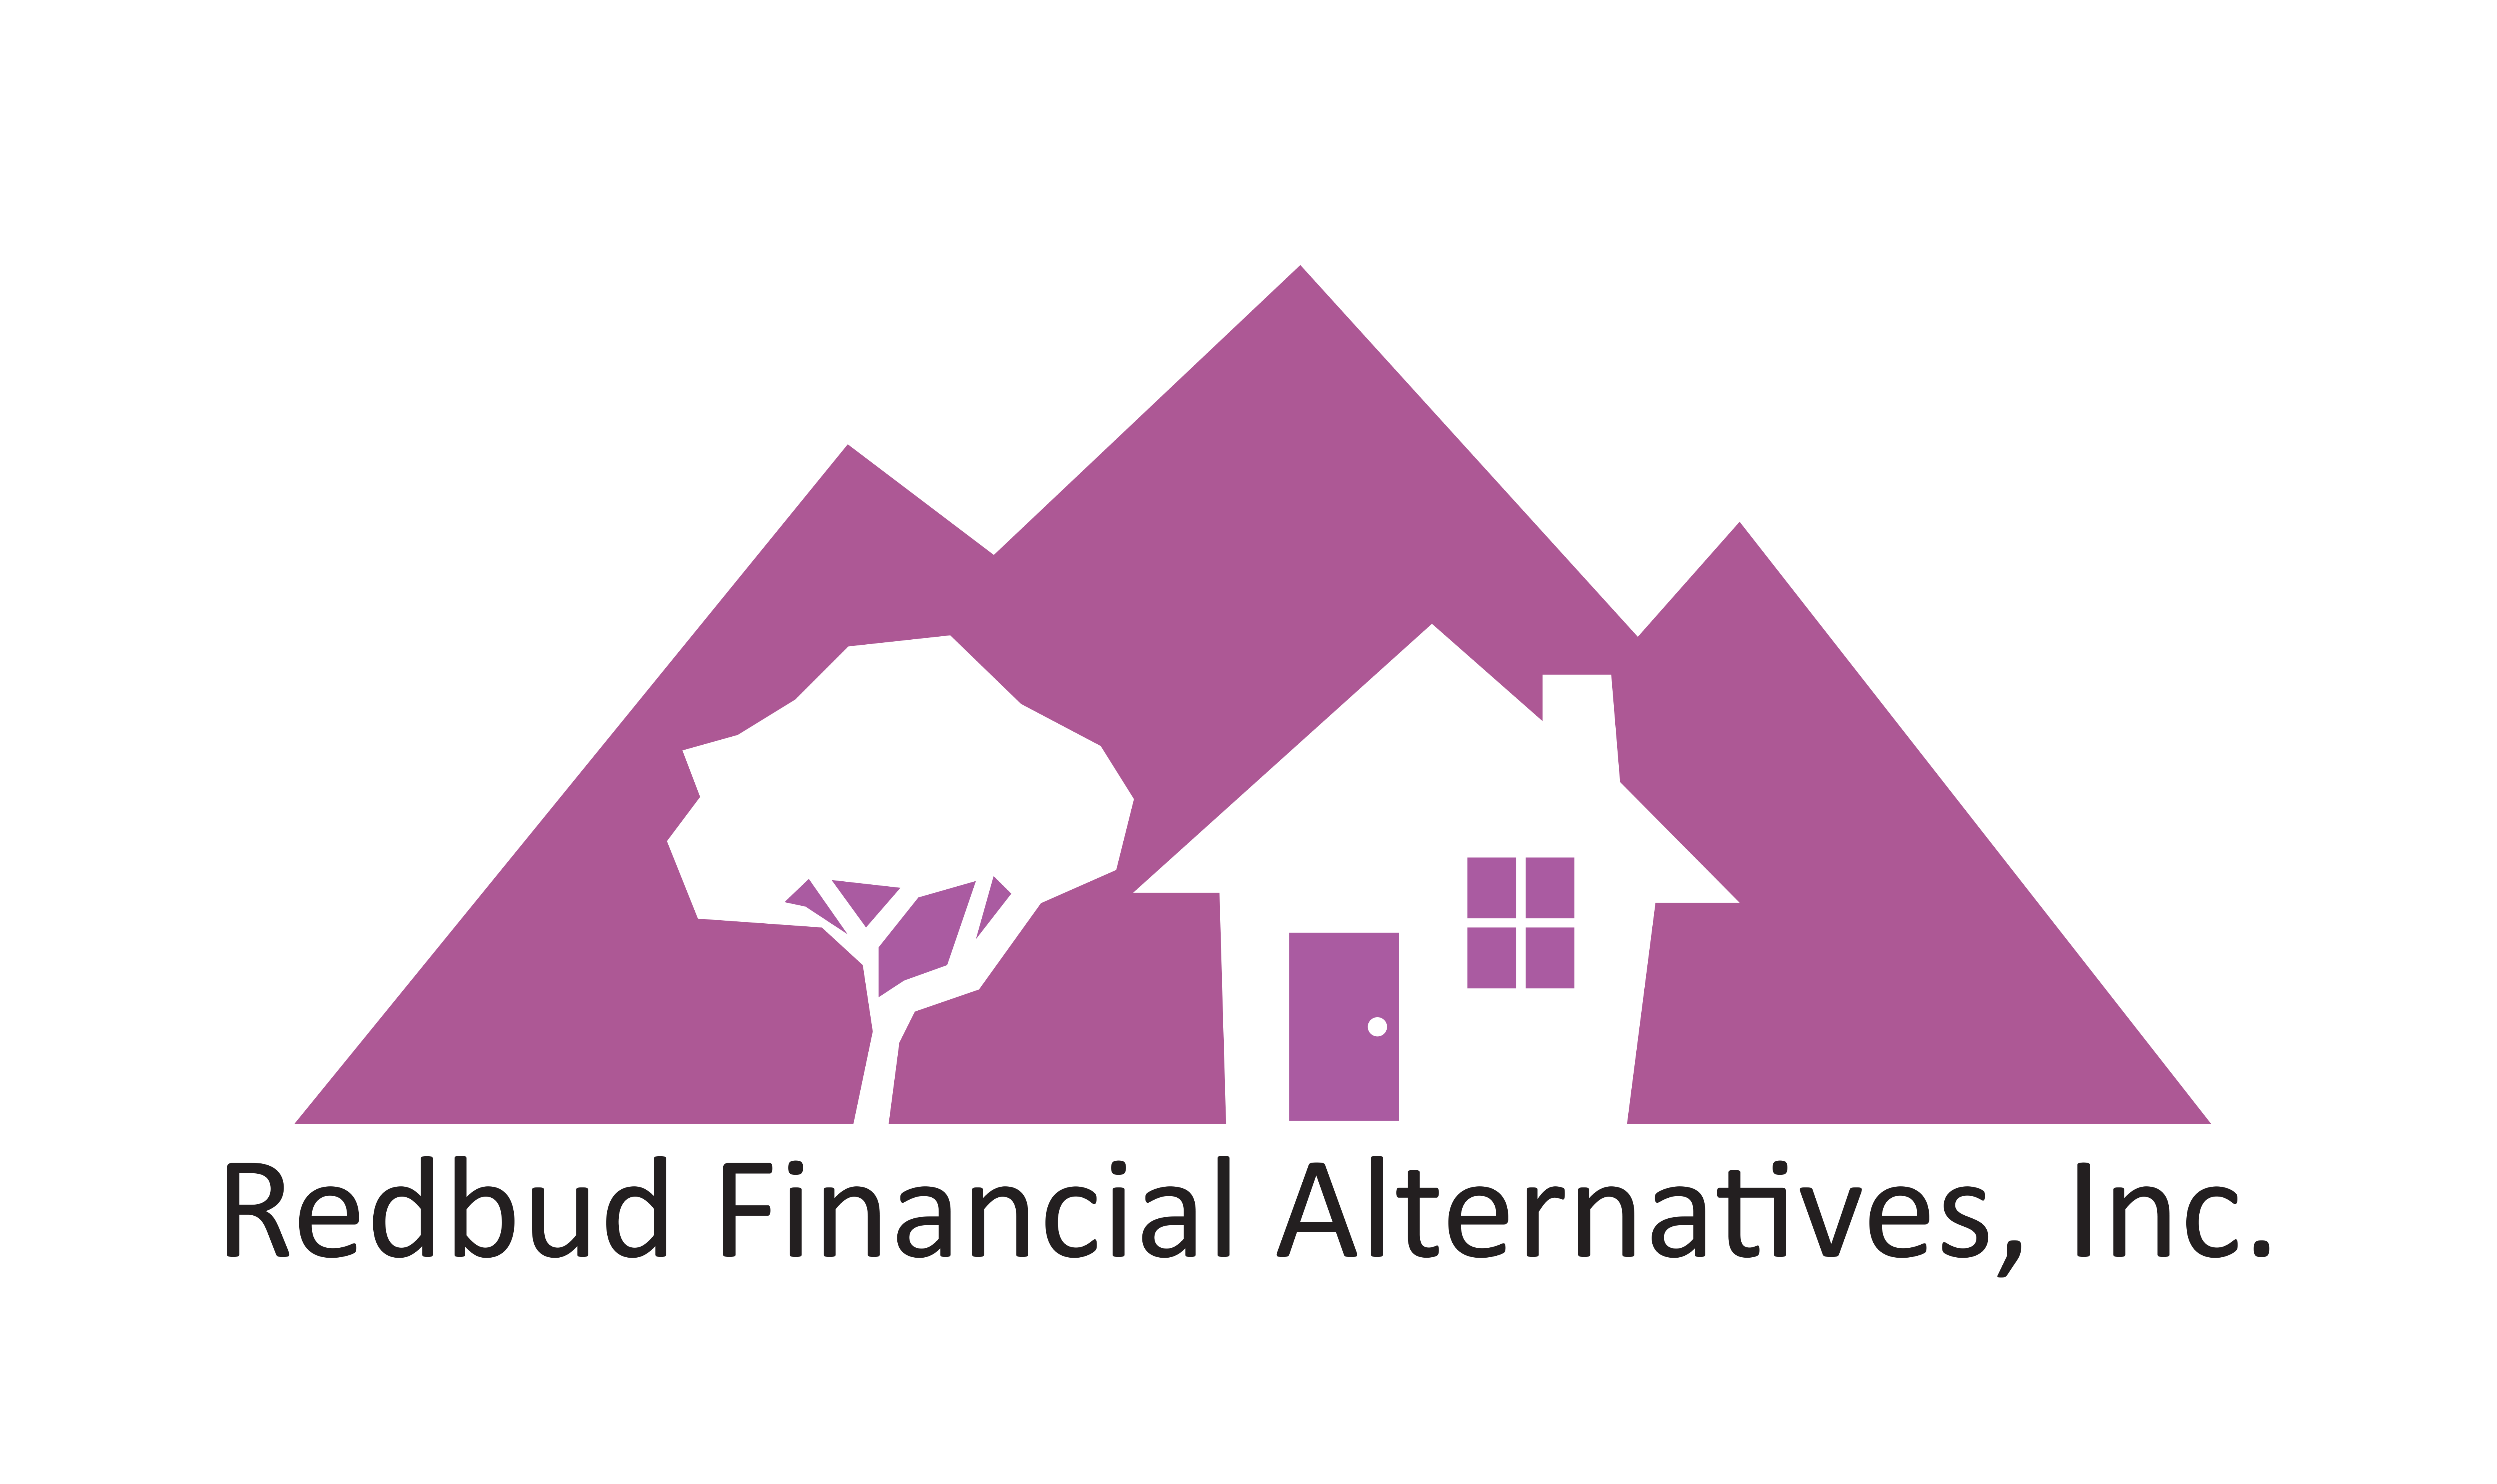 Redbud Financial Alternatives